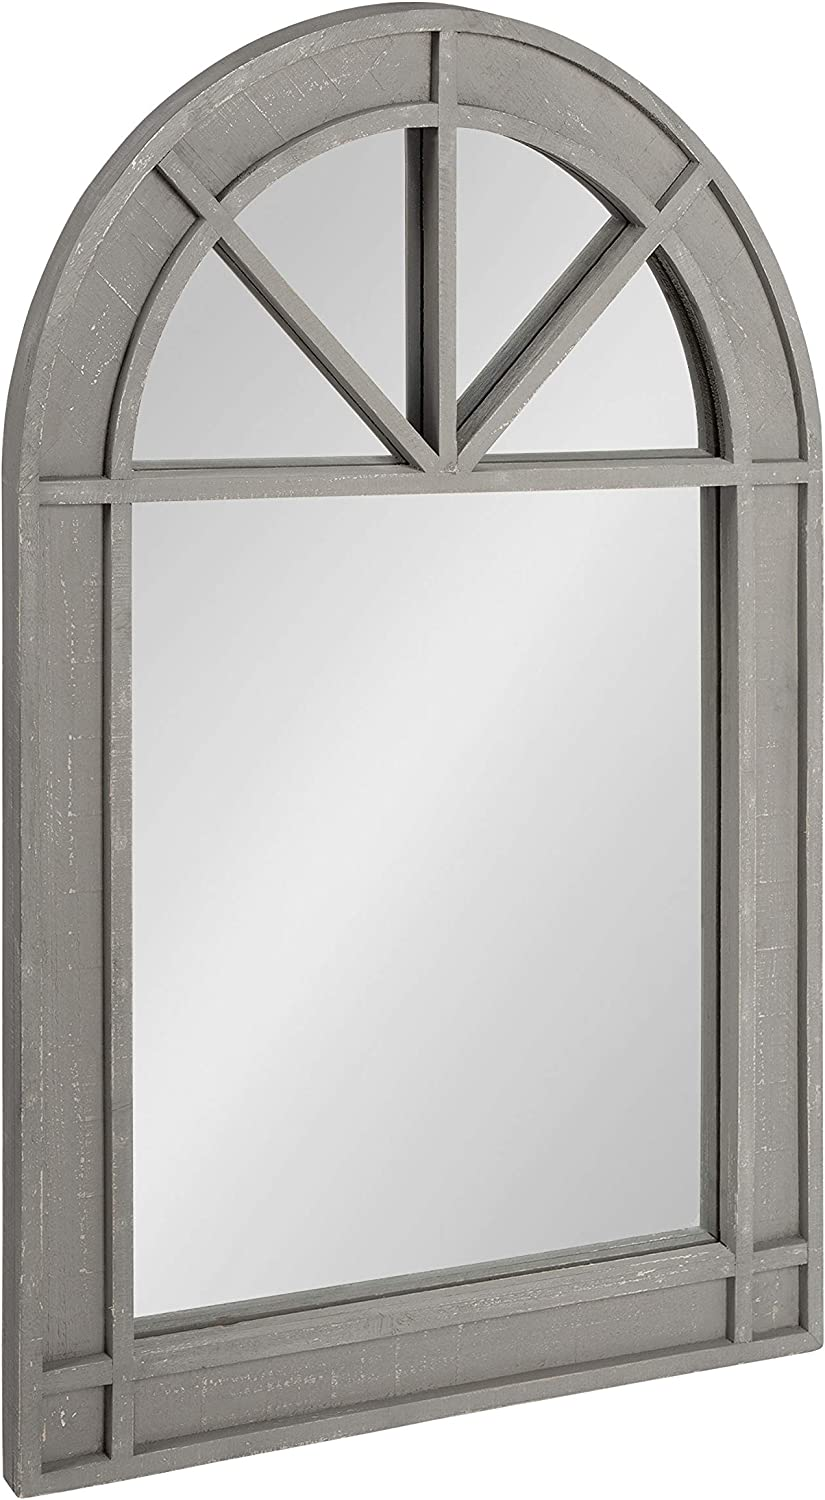 Kate and Laurel Stonebridge Rustic Arch Mirror Wall Decor, 24